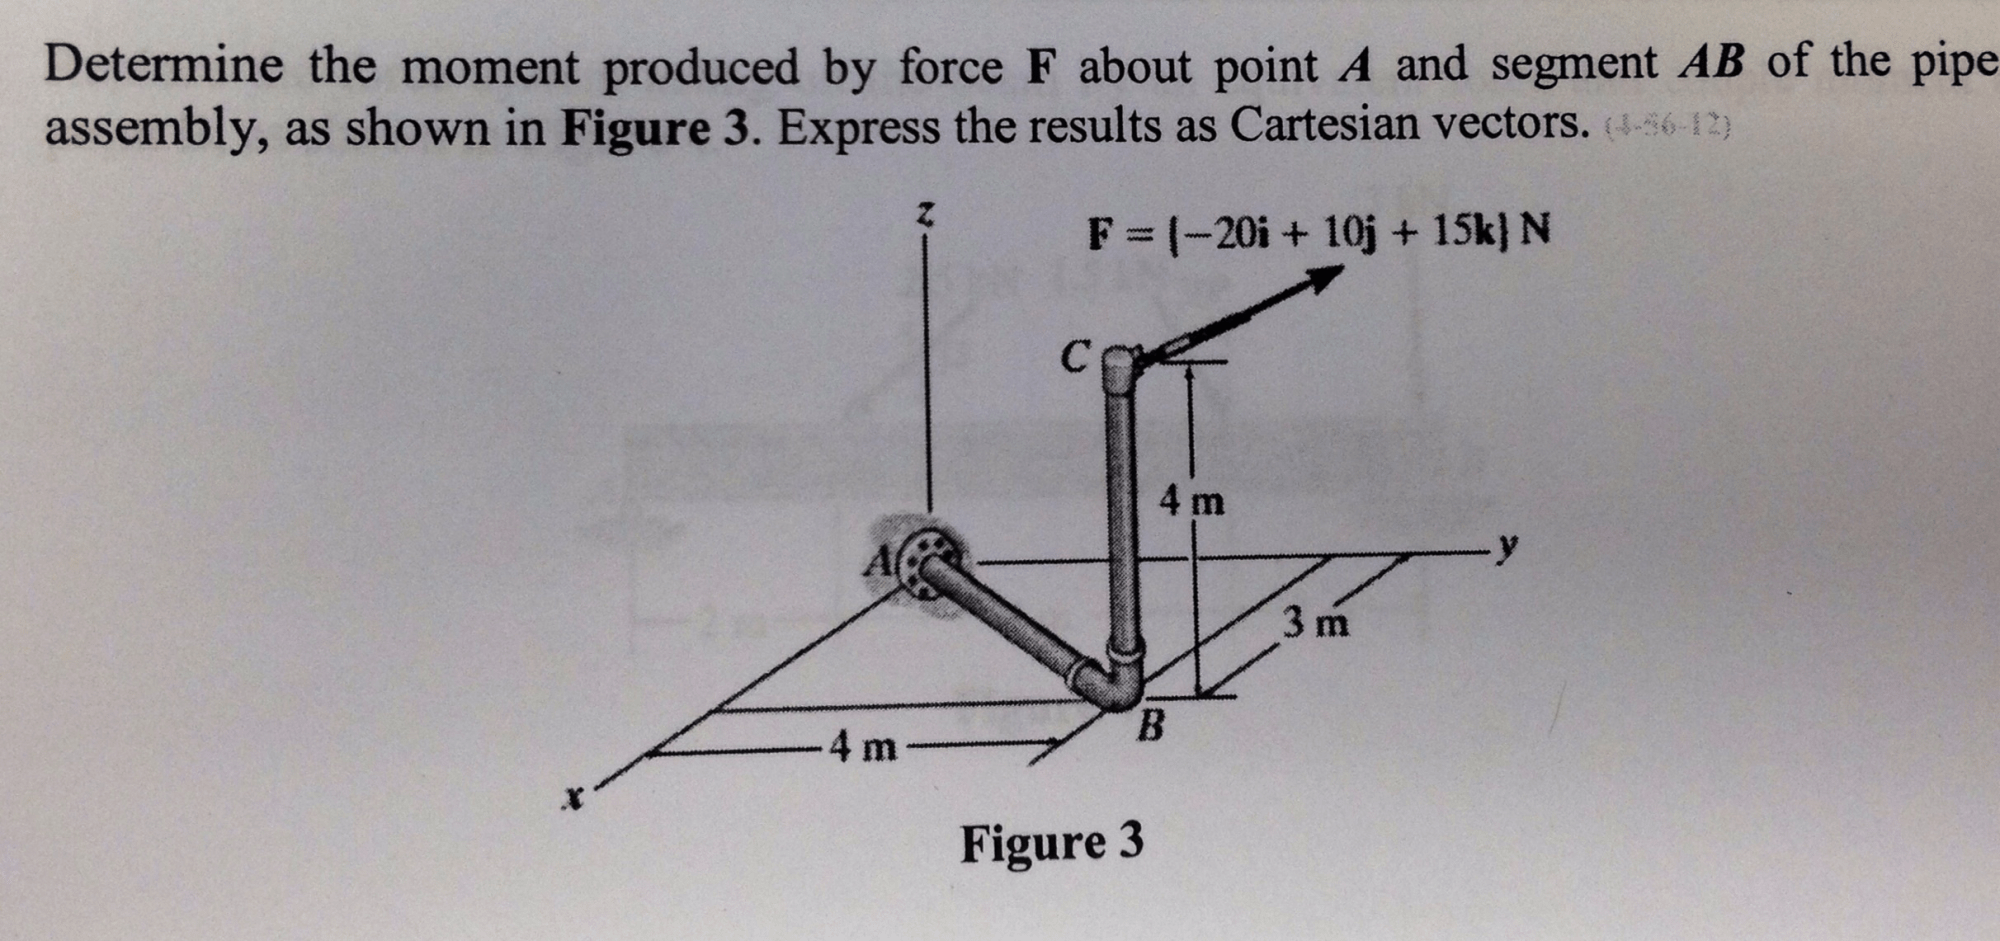 hight resolution of question determine the moment produced by force f about point a and segment ab of the pipe assembly as sh